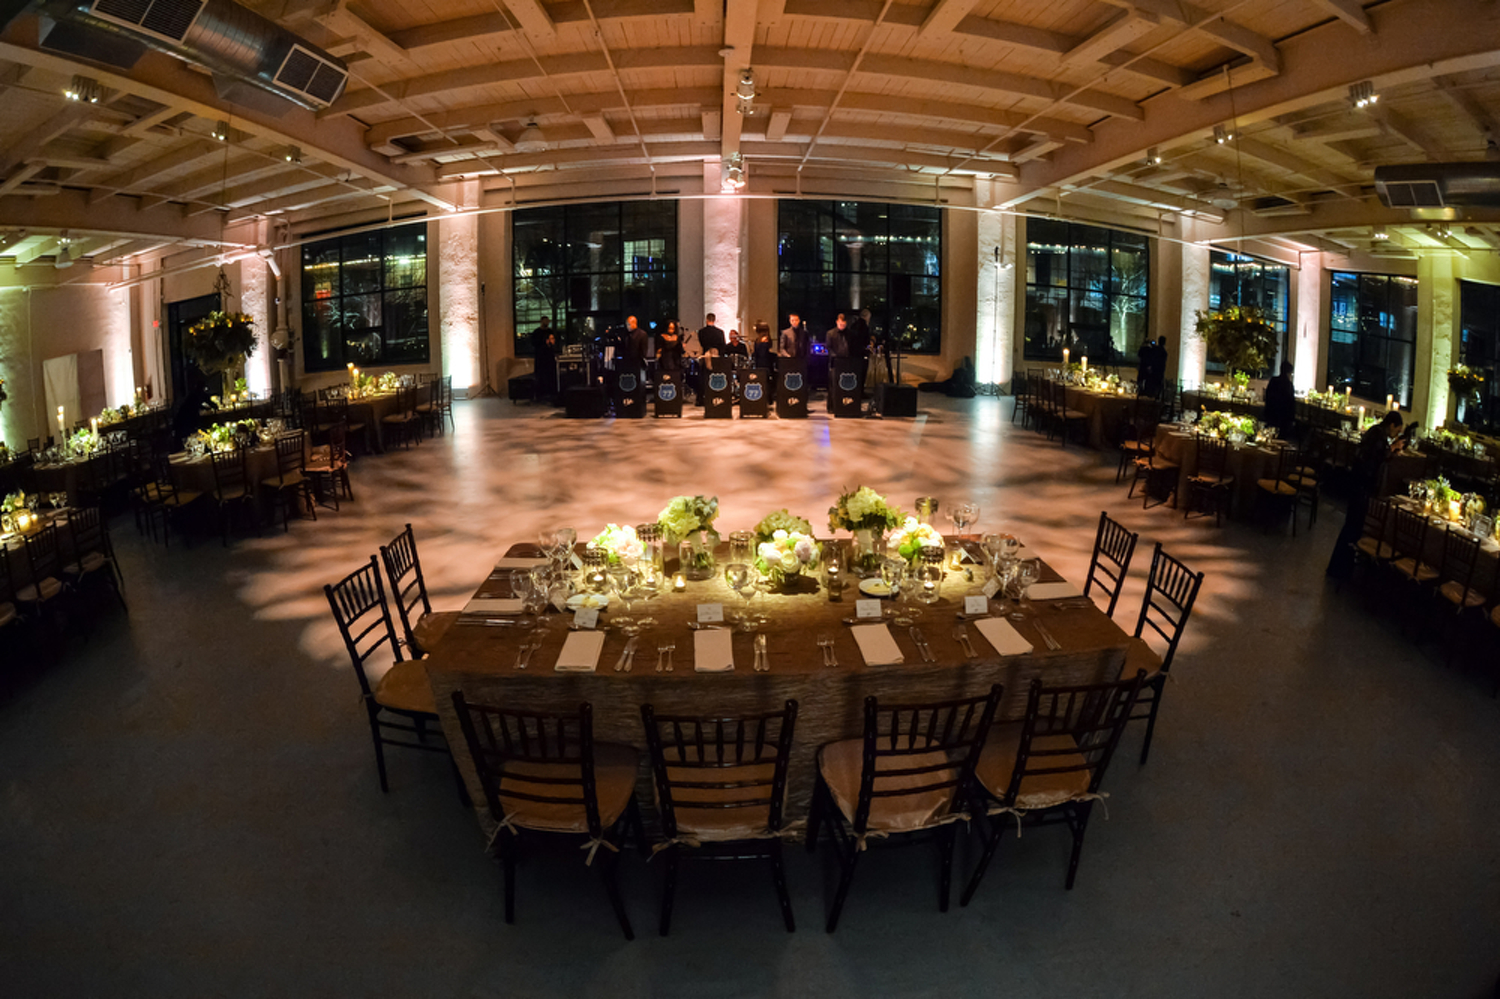 Moulin Sherman Mills, Evantine Design, Premier Philadelphia, 19129, Philadelphia Venue, Pictures By Todd Photography, Wedding Places